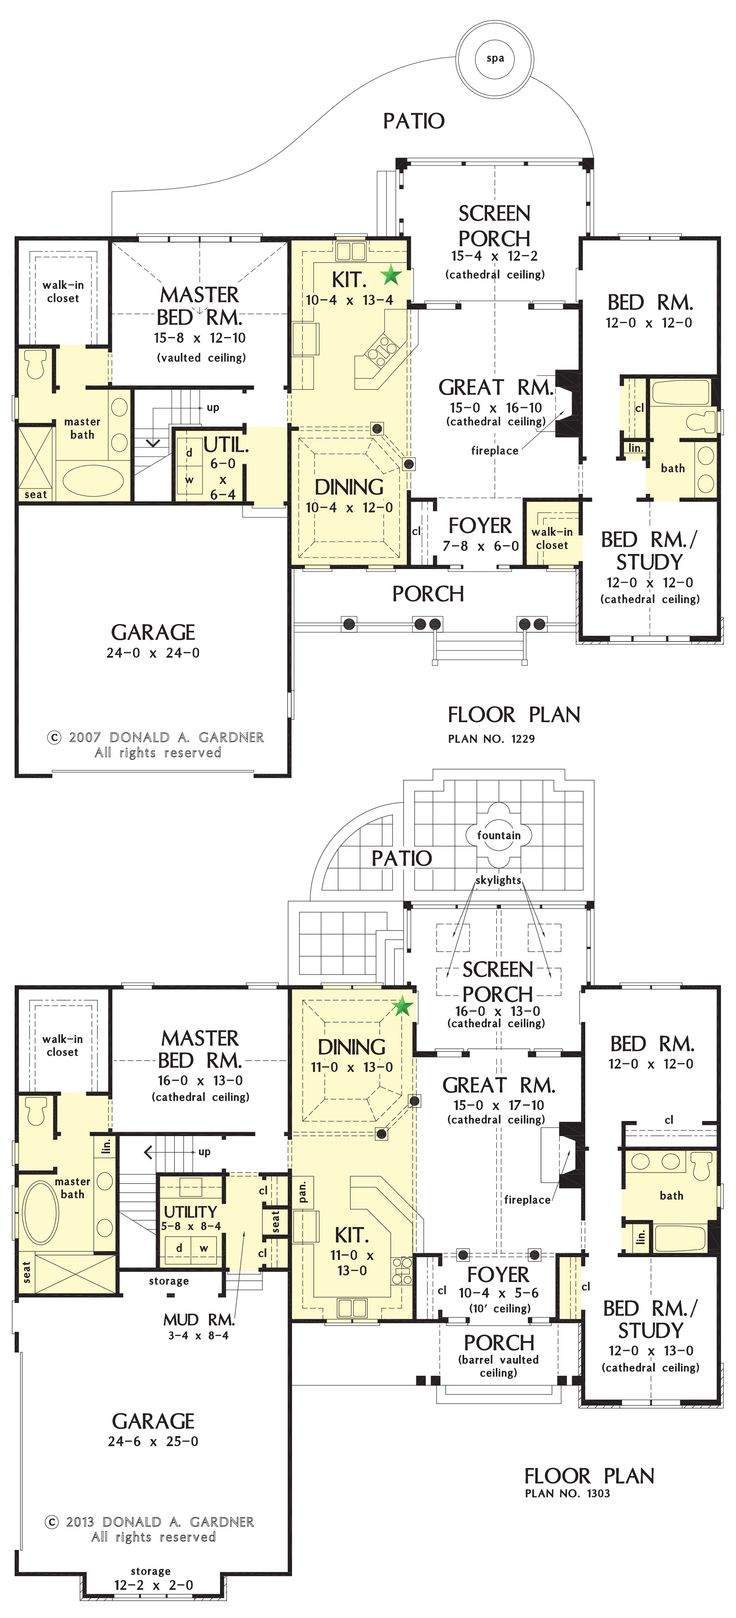 143 best home plans images on pinterest dream house plans house 143 best home plans images on pinterest dream house plans house floor plans and architecture